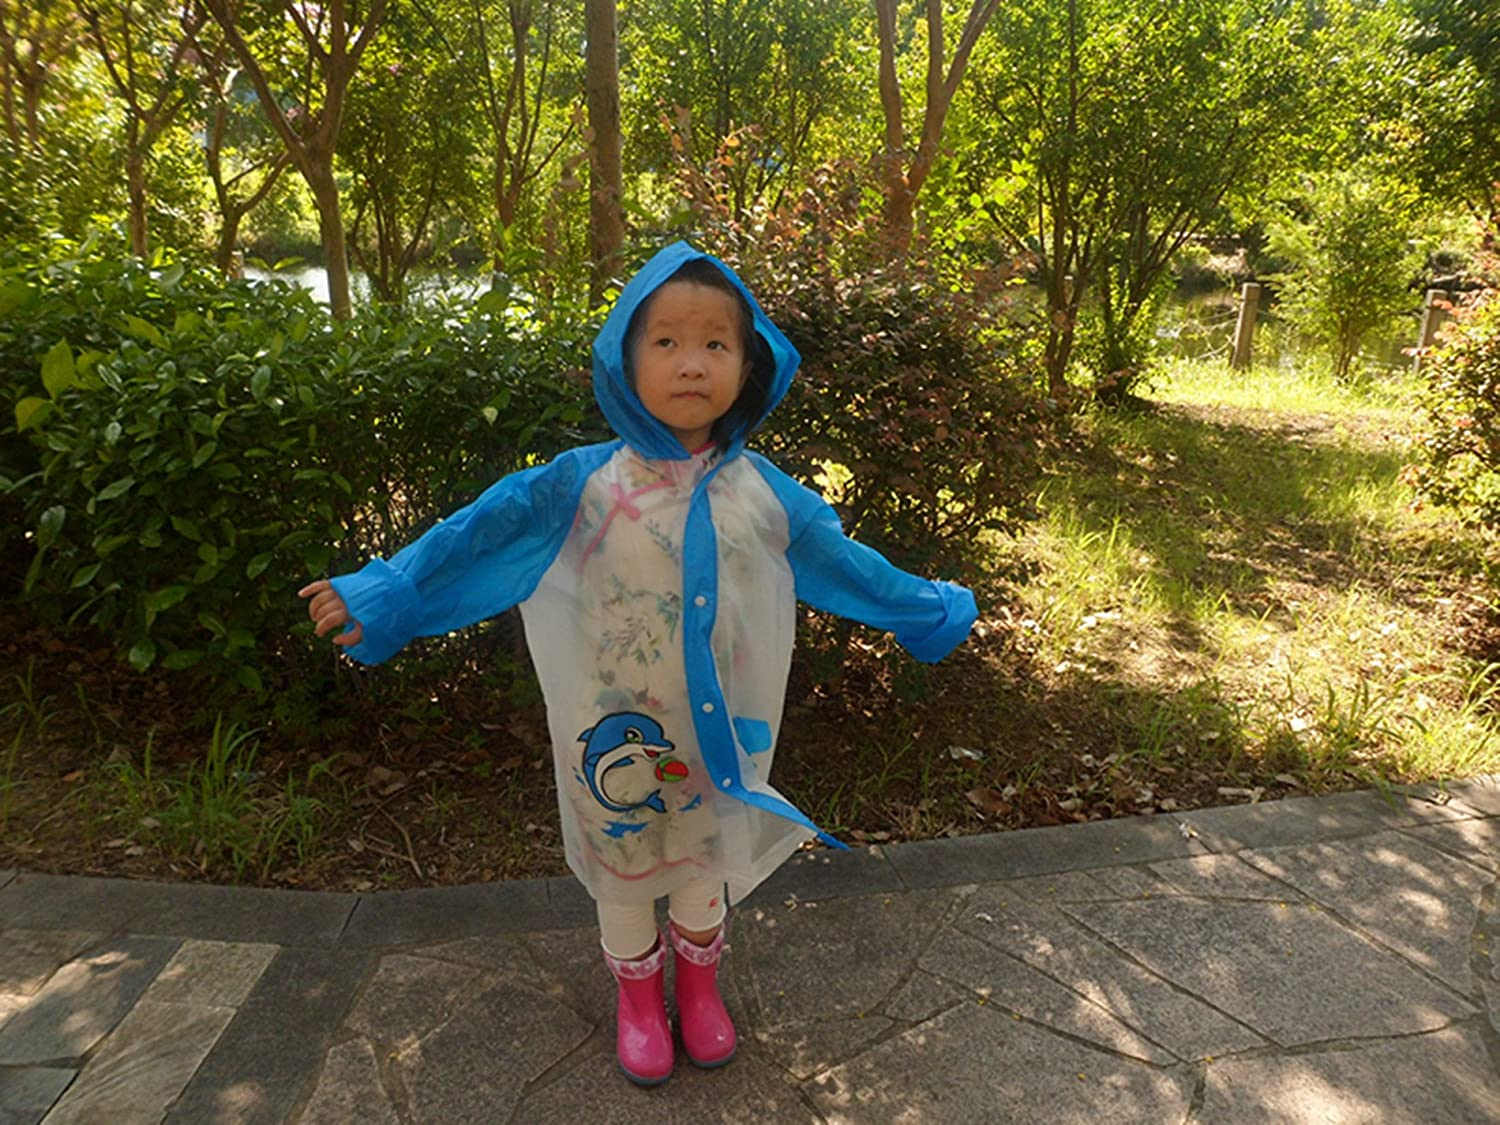 Taiduosheng Kids Hooded Jacket Cover Long Rainwear for Boys Girls /& Toddlers with Colorful Prints Small Pocket Rain Raincoat